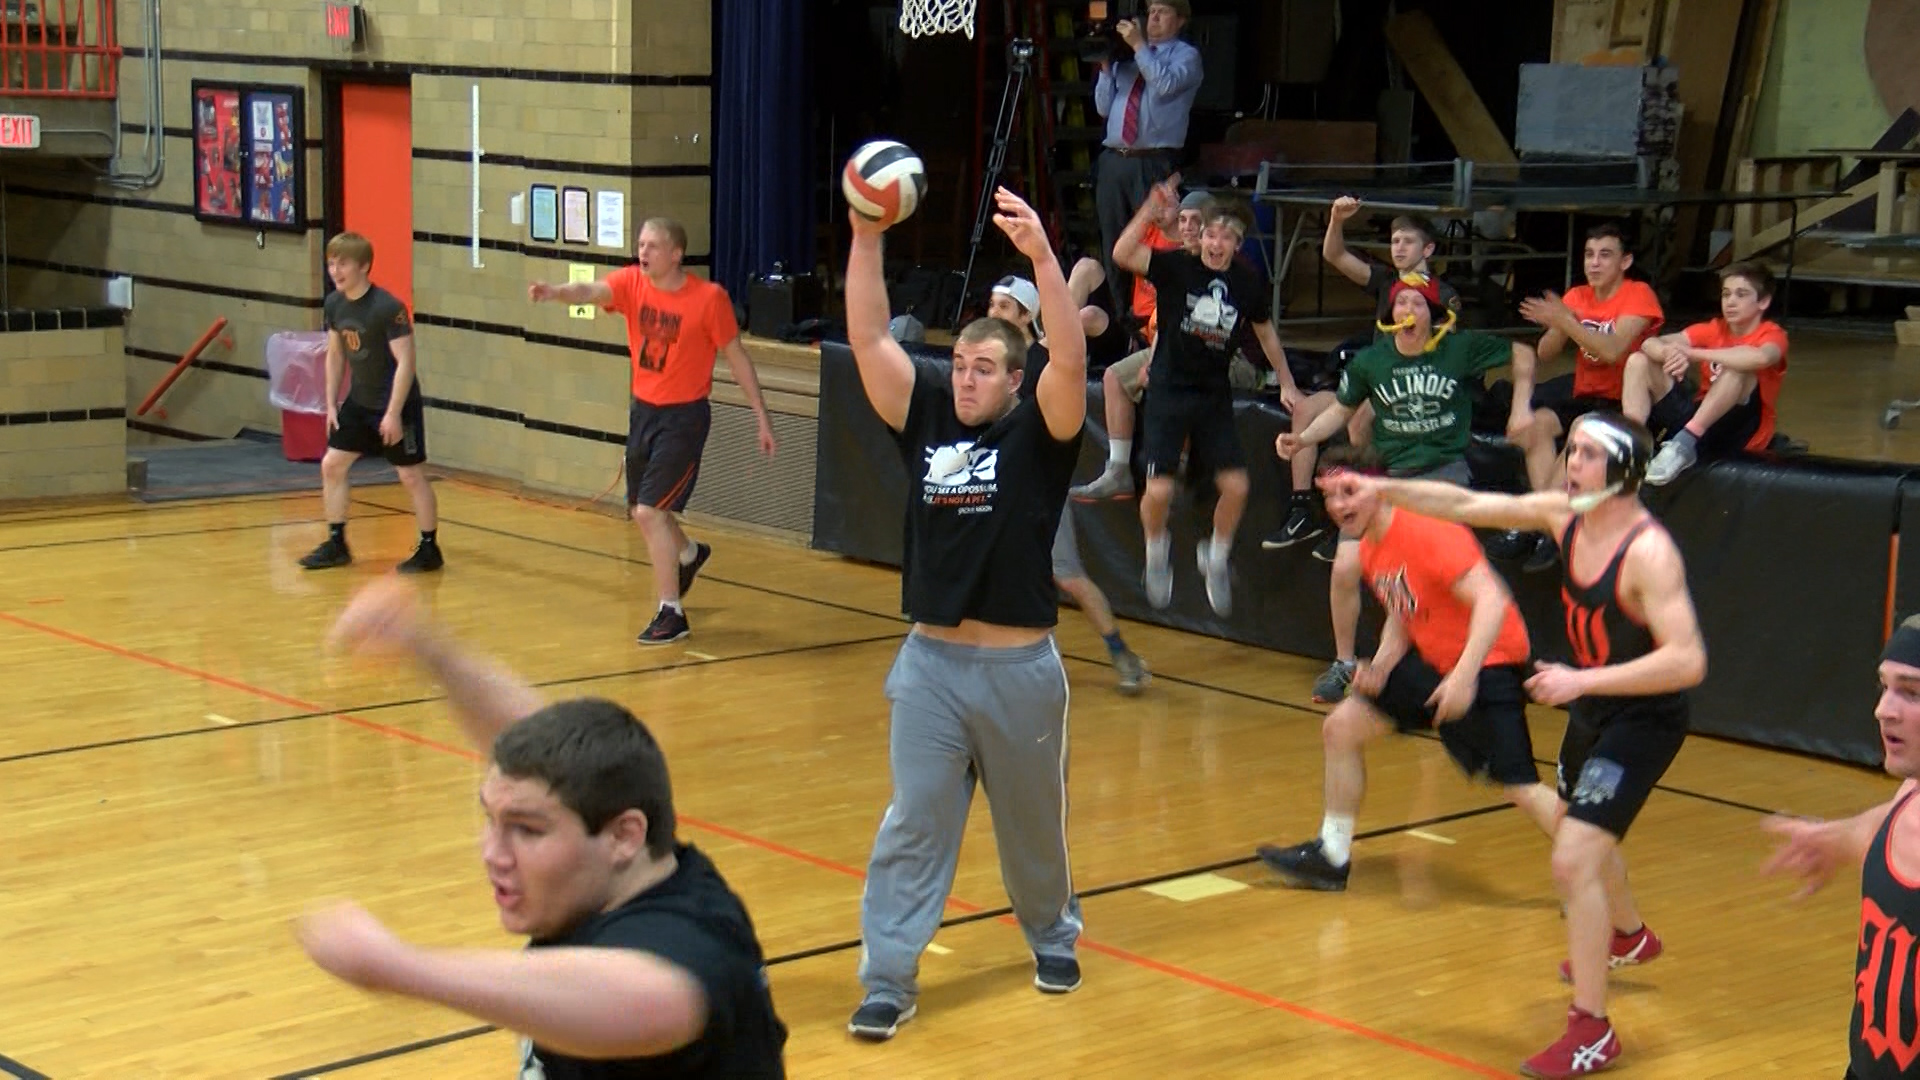 Washington dodge ball_1491523725855.jpg